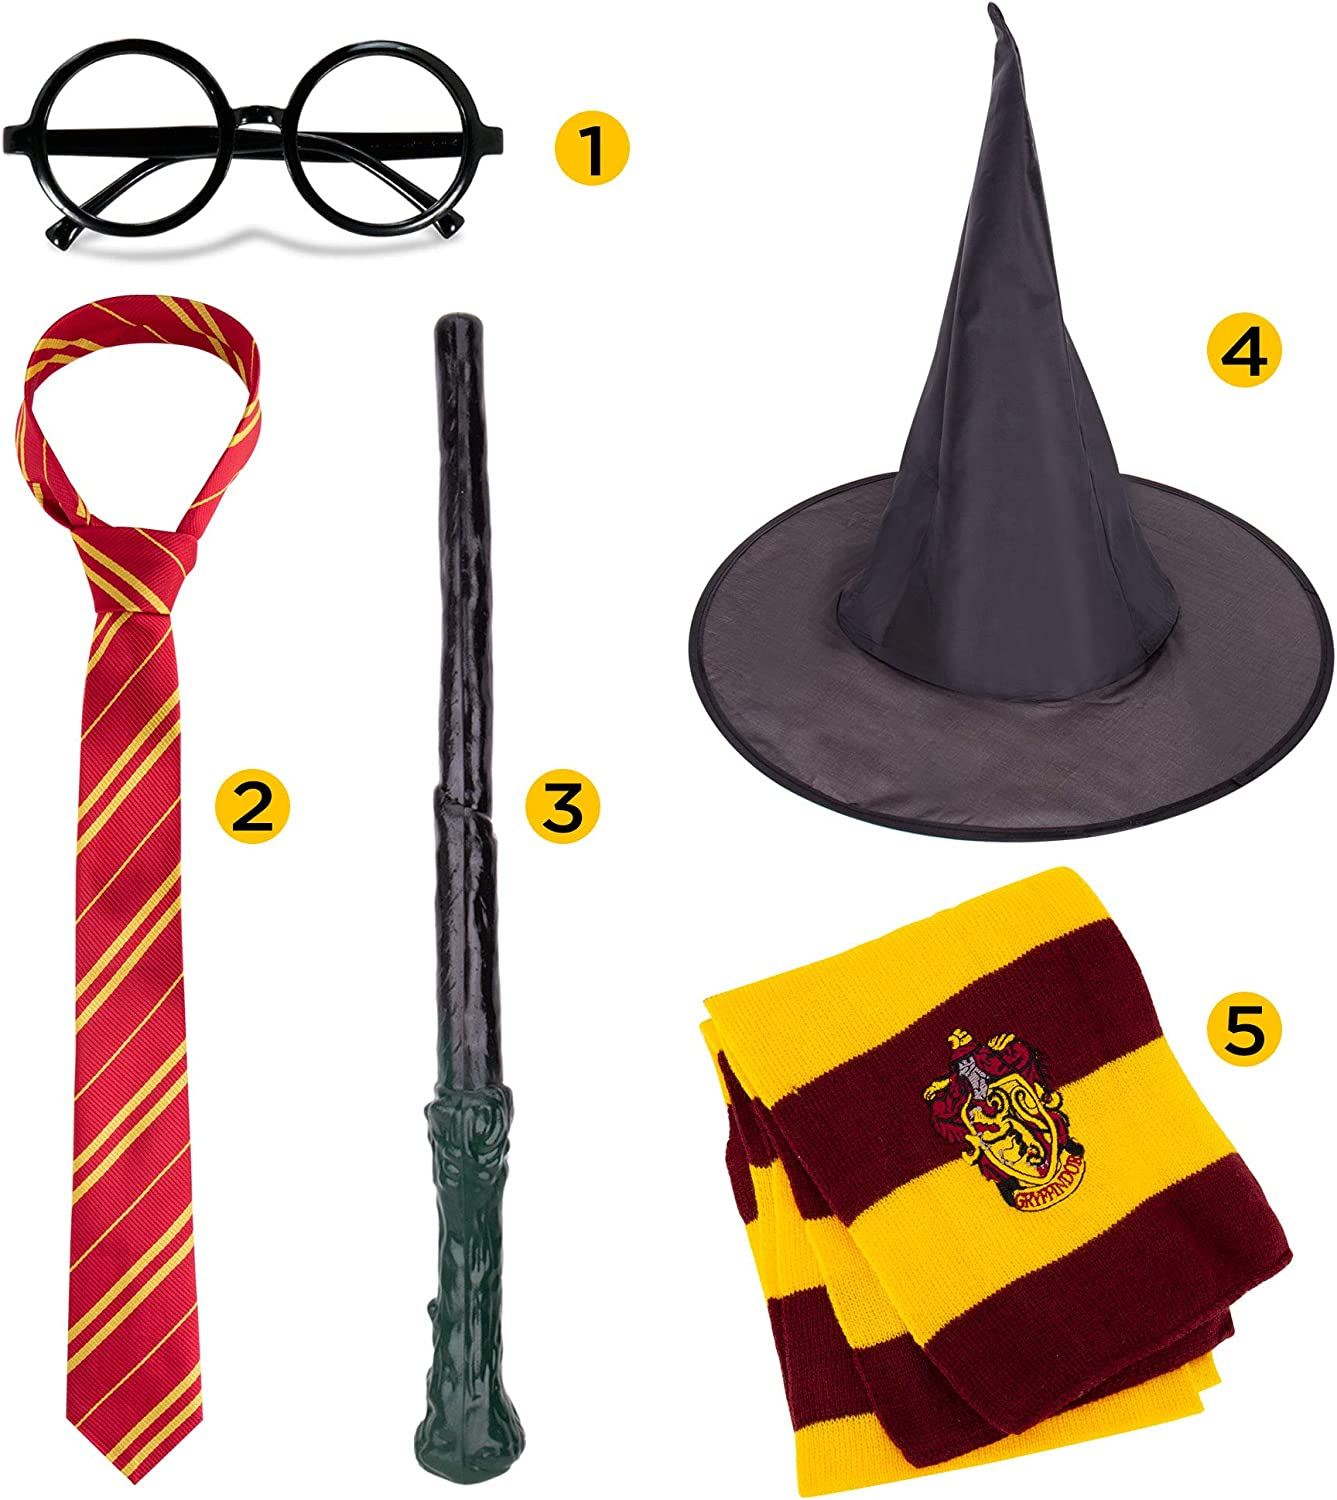 Magic Wand and Heathered Knit Scarf Glasses Frame Novelty Scarf Wizard 5 pcs Cosplay Set for Halloween Christmas -Striped Tie Wizard hat Halloween Wizard Cosplay Party Costumes Accessories